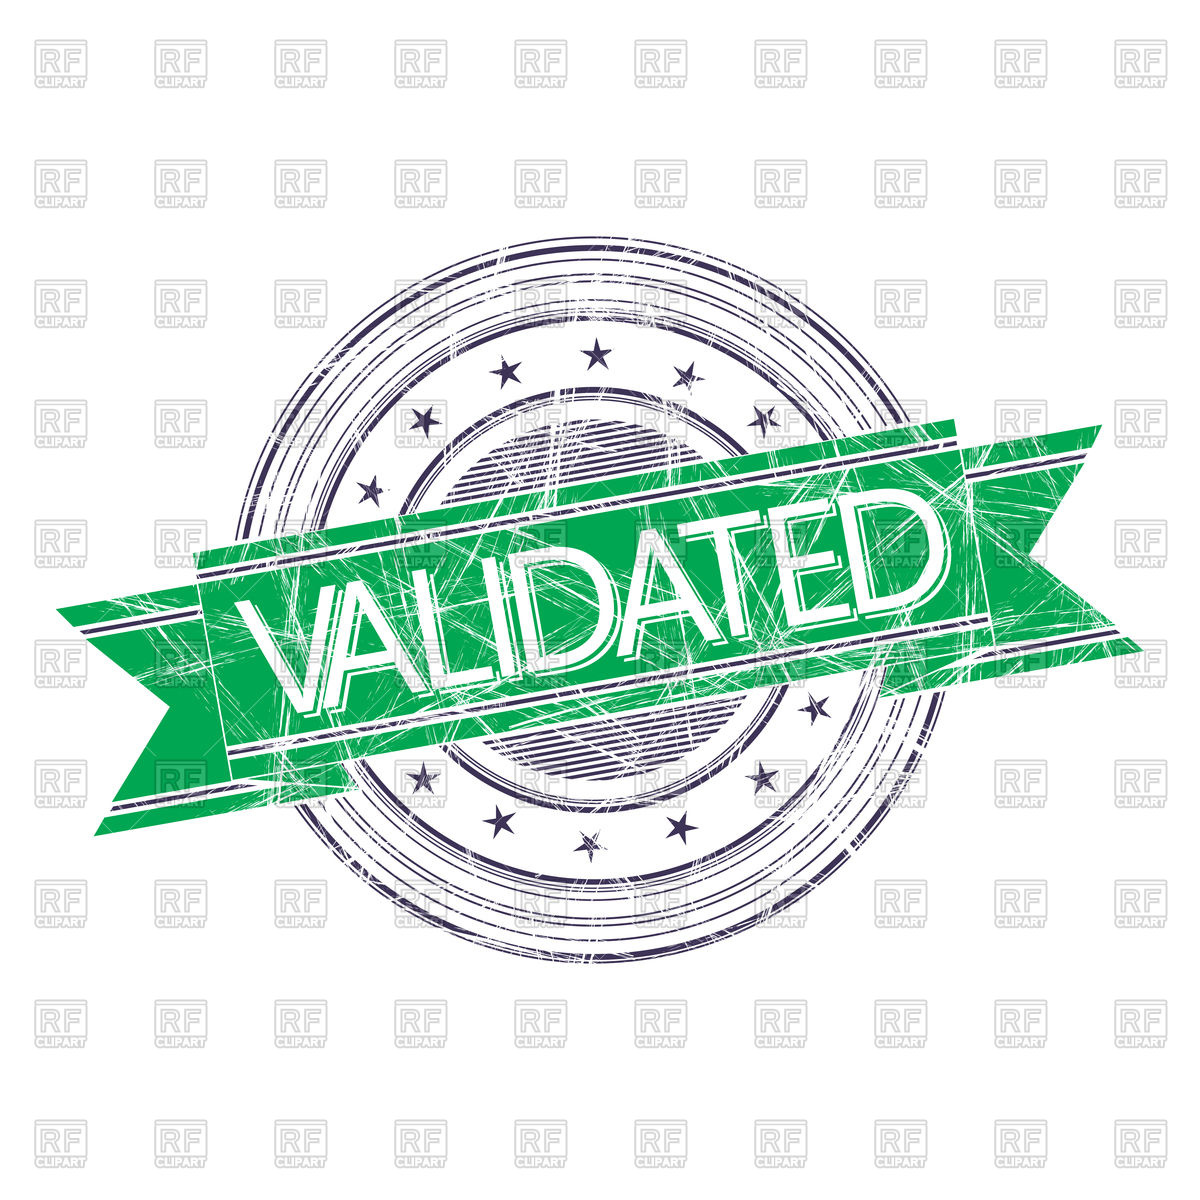 Validated grunge rubber stamp on white background Vector Image.